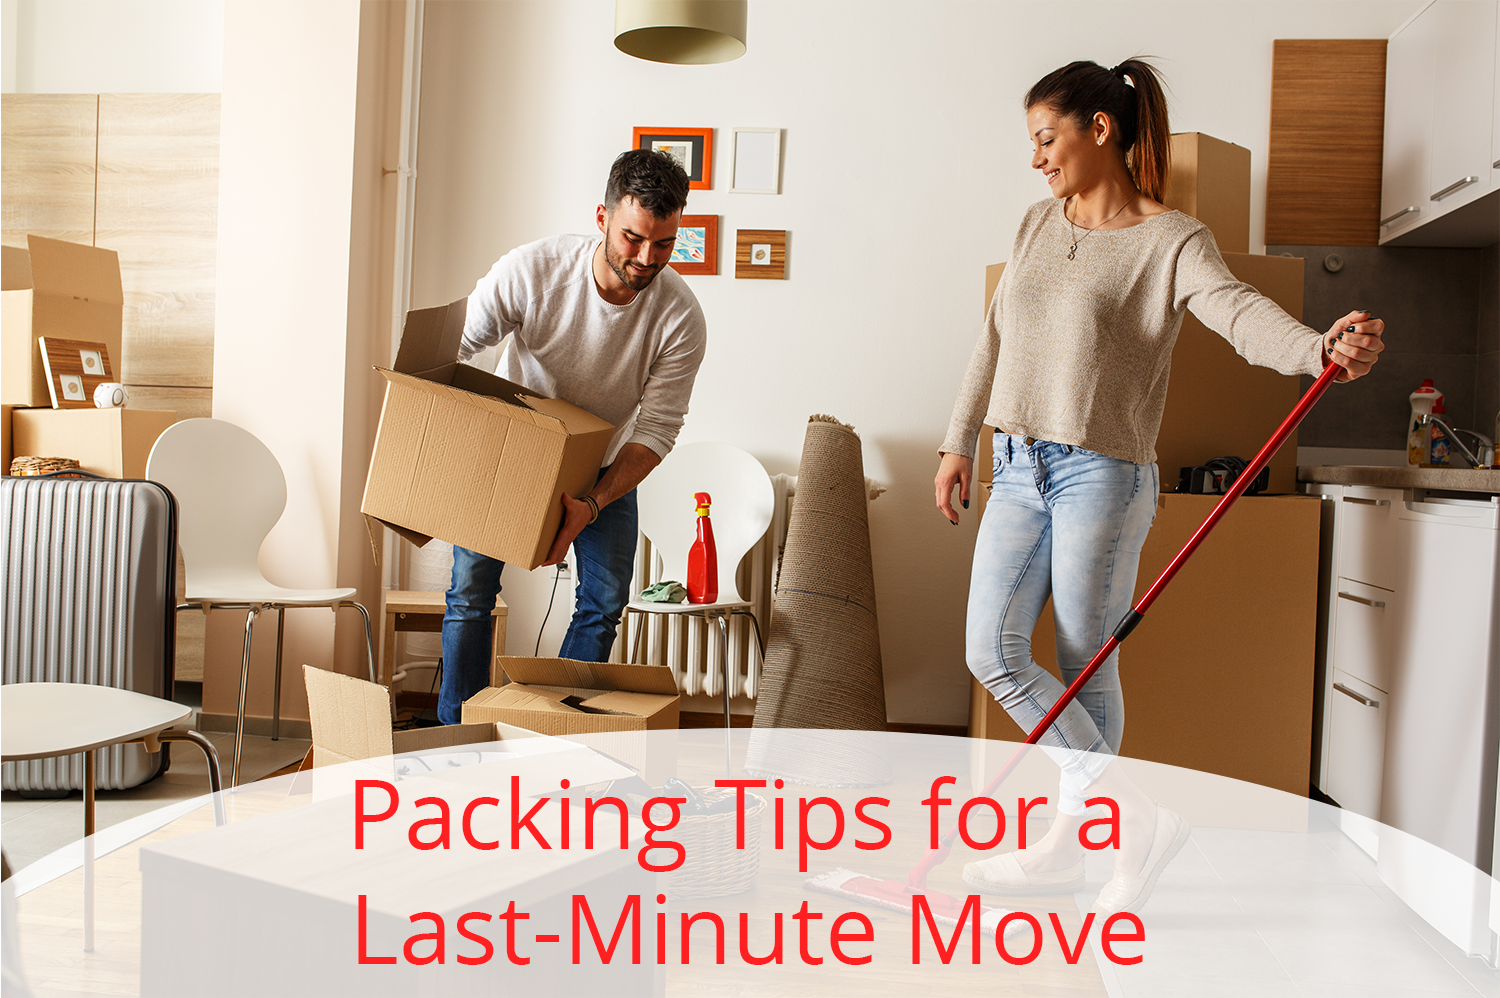 Man and woman packing up their home for a last minute move.